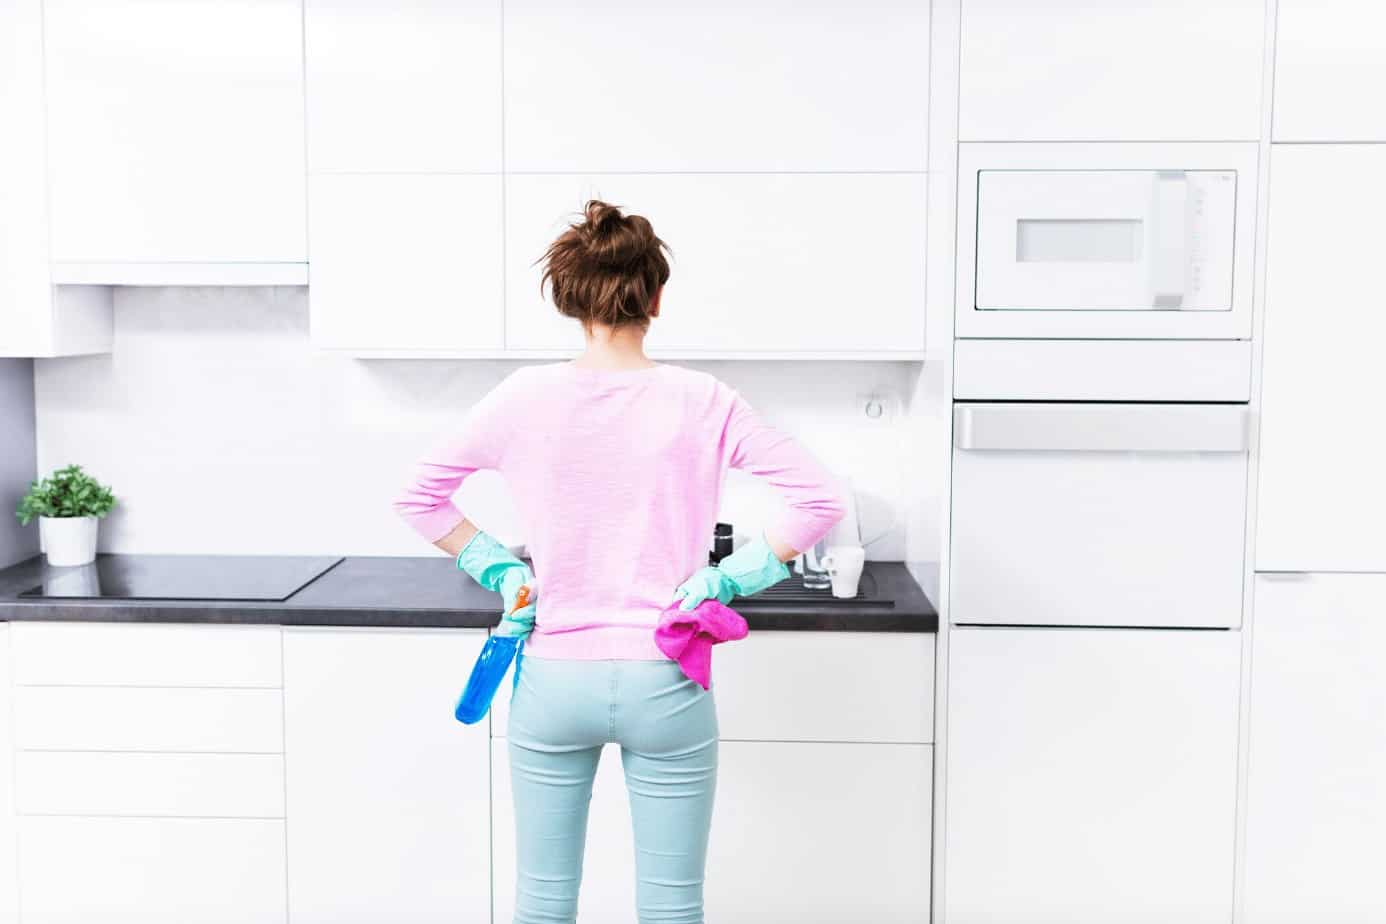 lady facing kitchen cabinets with cleaning gloves on